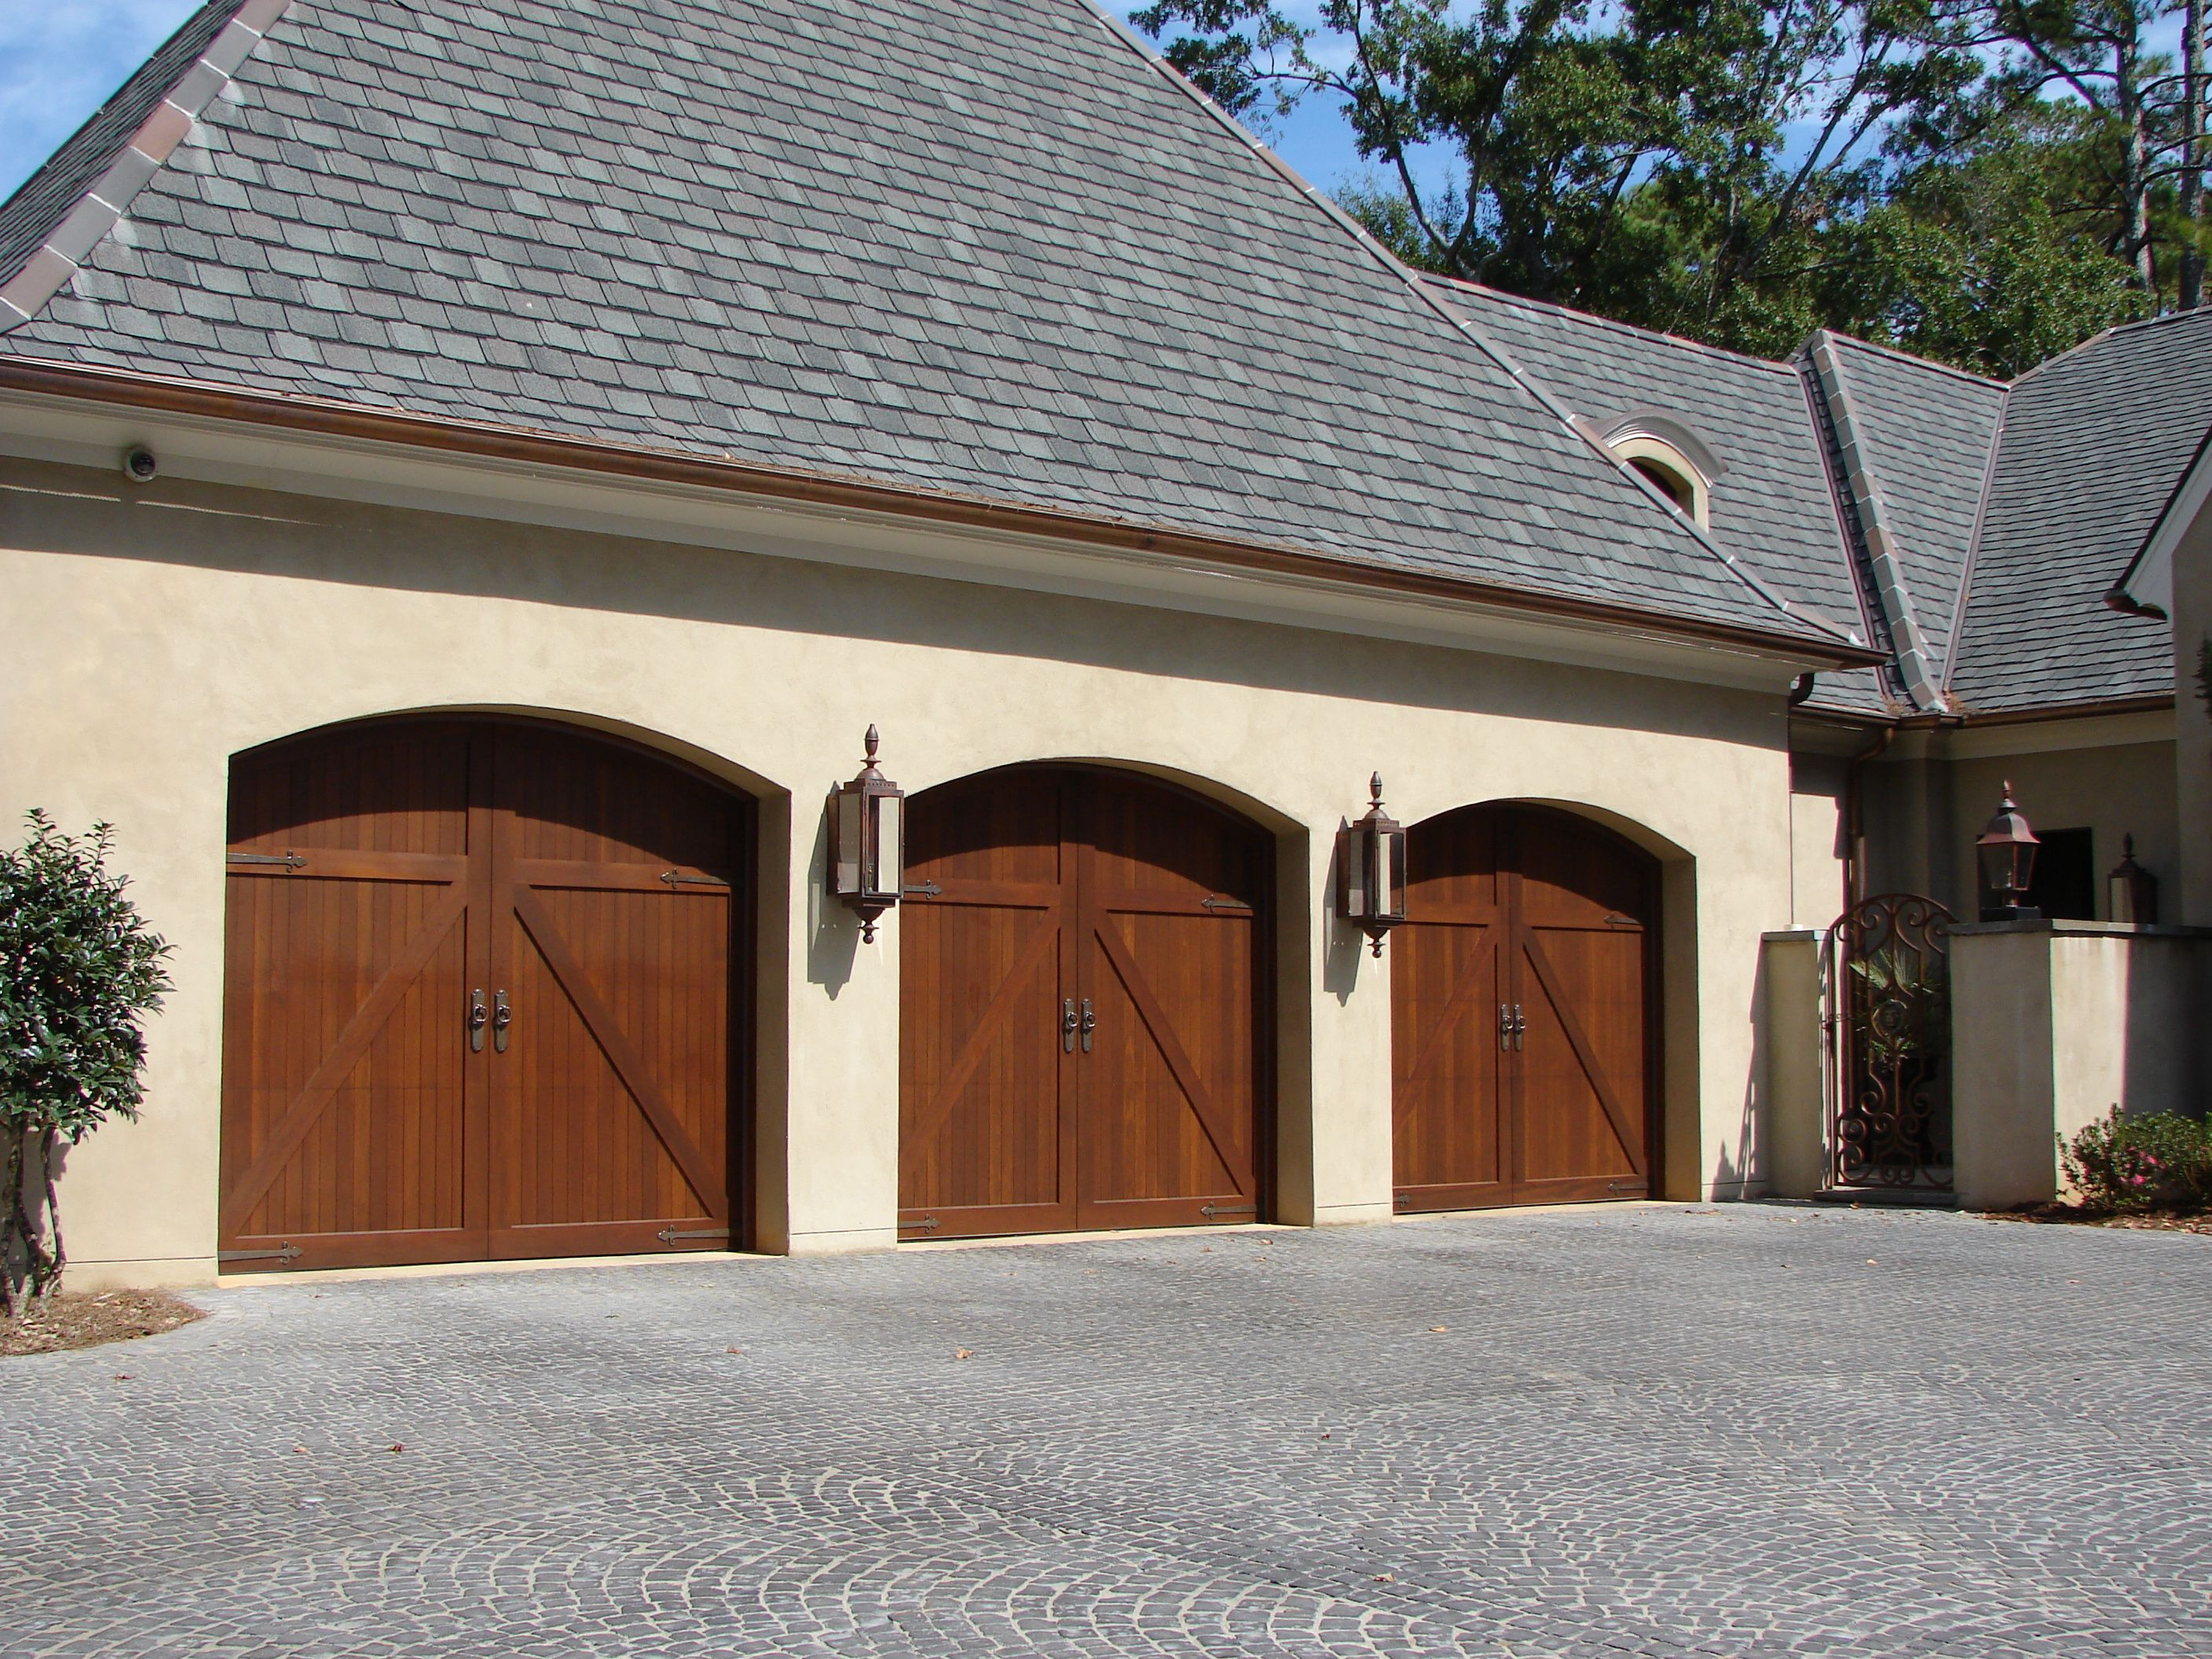 Garage Doors With Beautiful Stucco Exterior And Roof Pitch Home